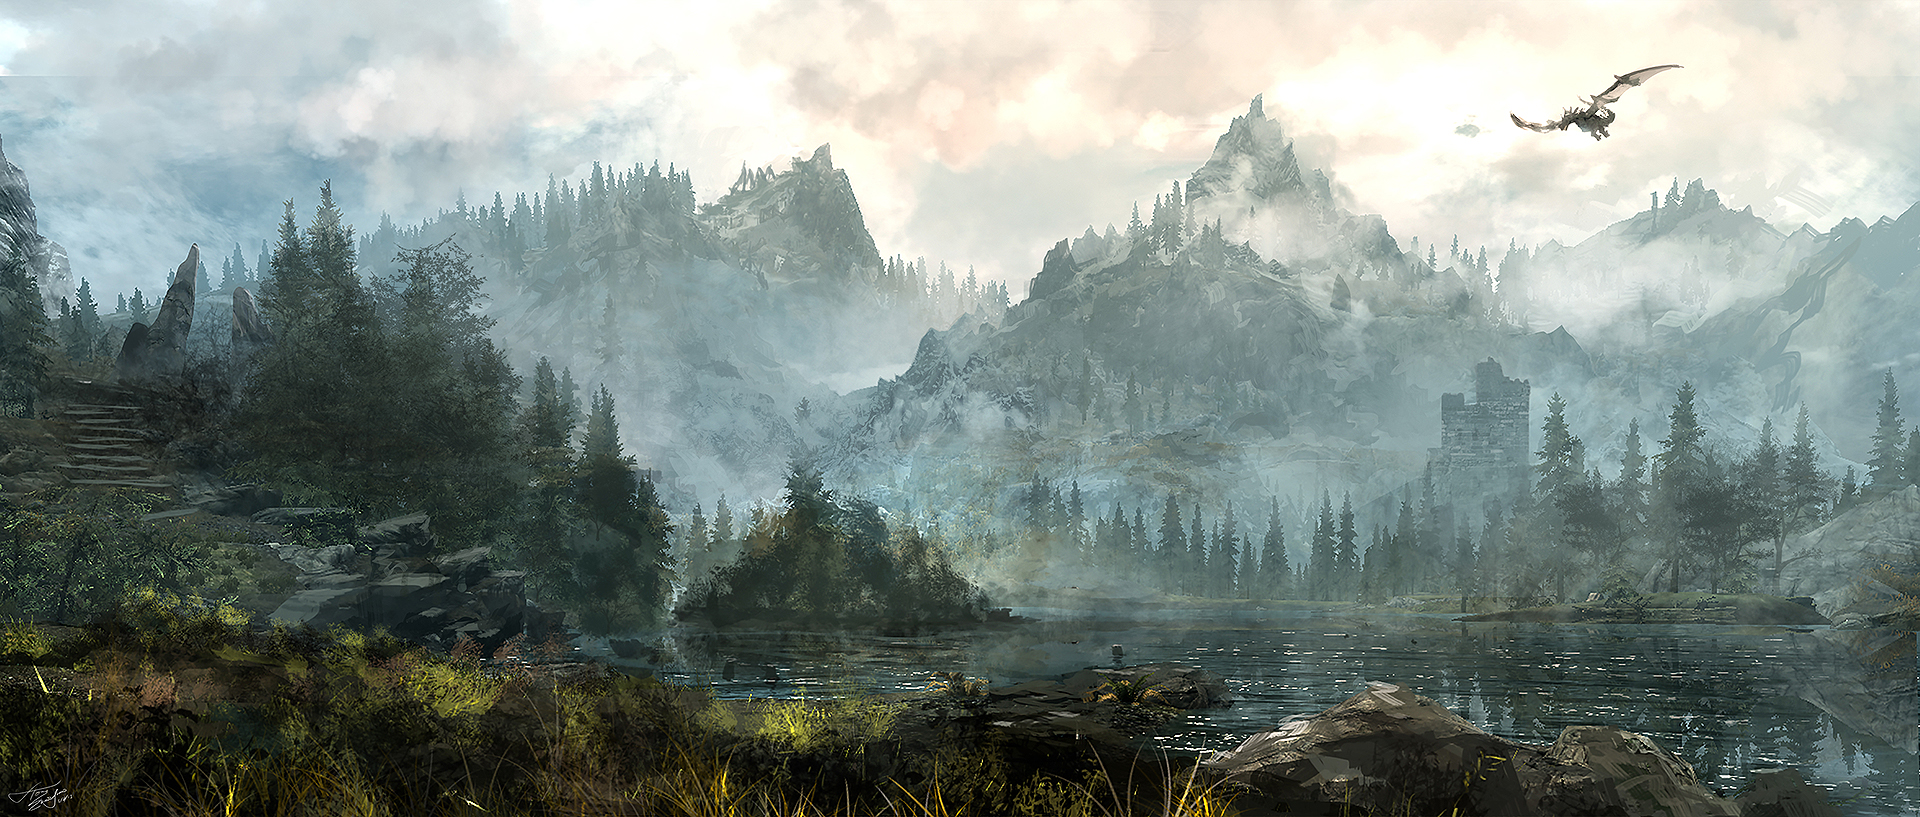 skyrim paint art wallpapers - photo #23